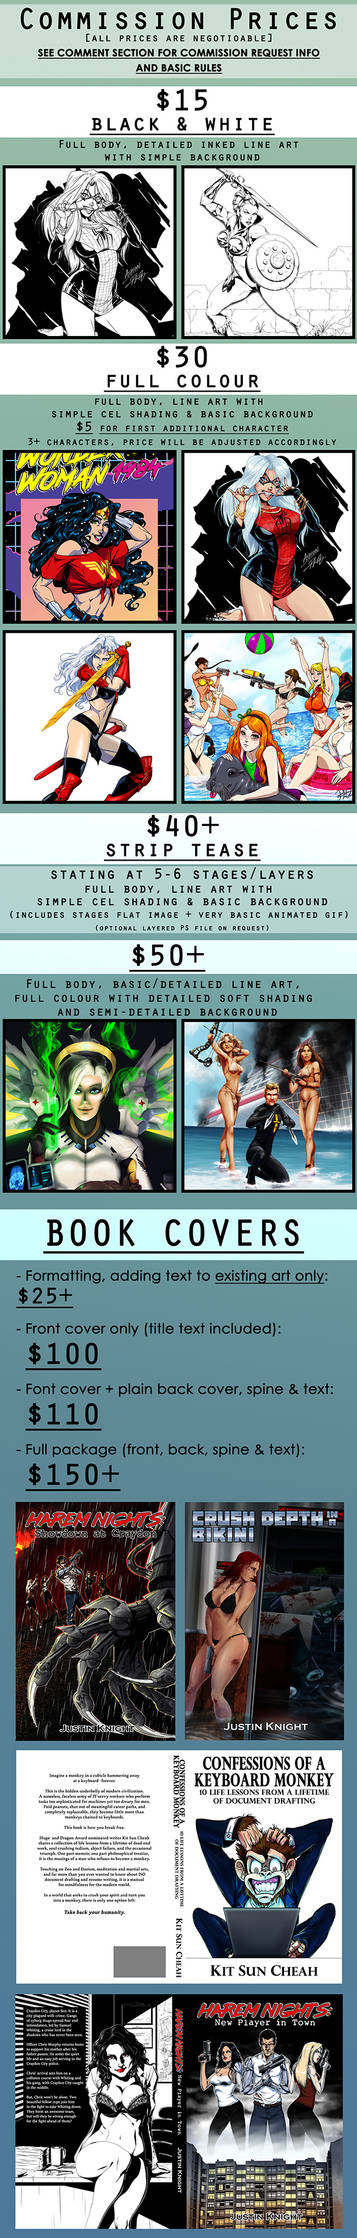 Commissions UPDATED